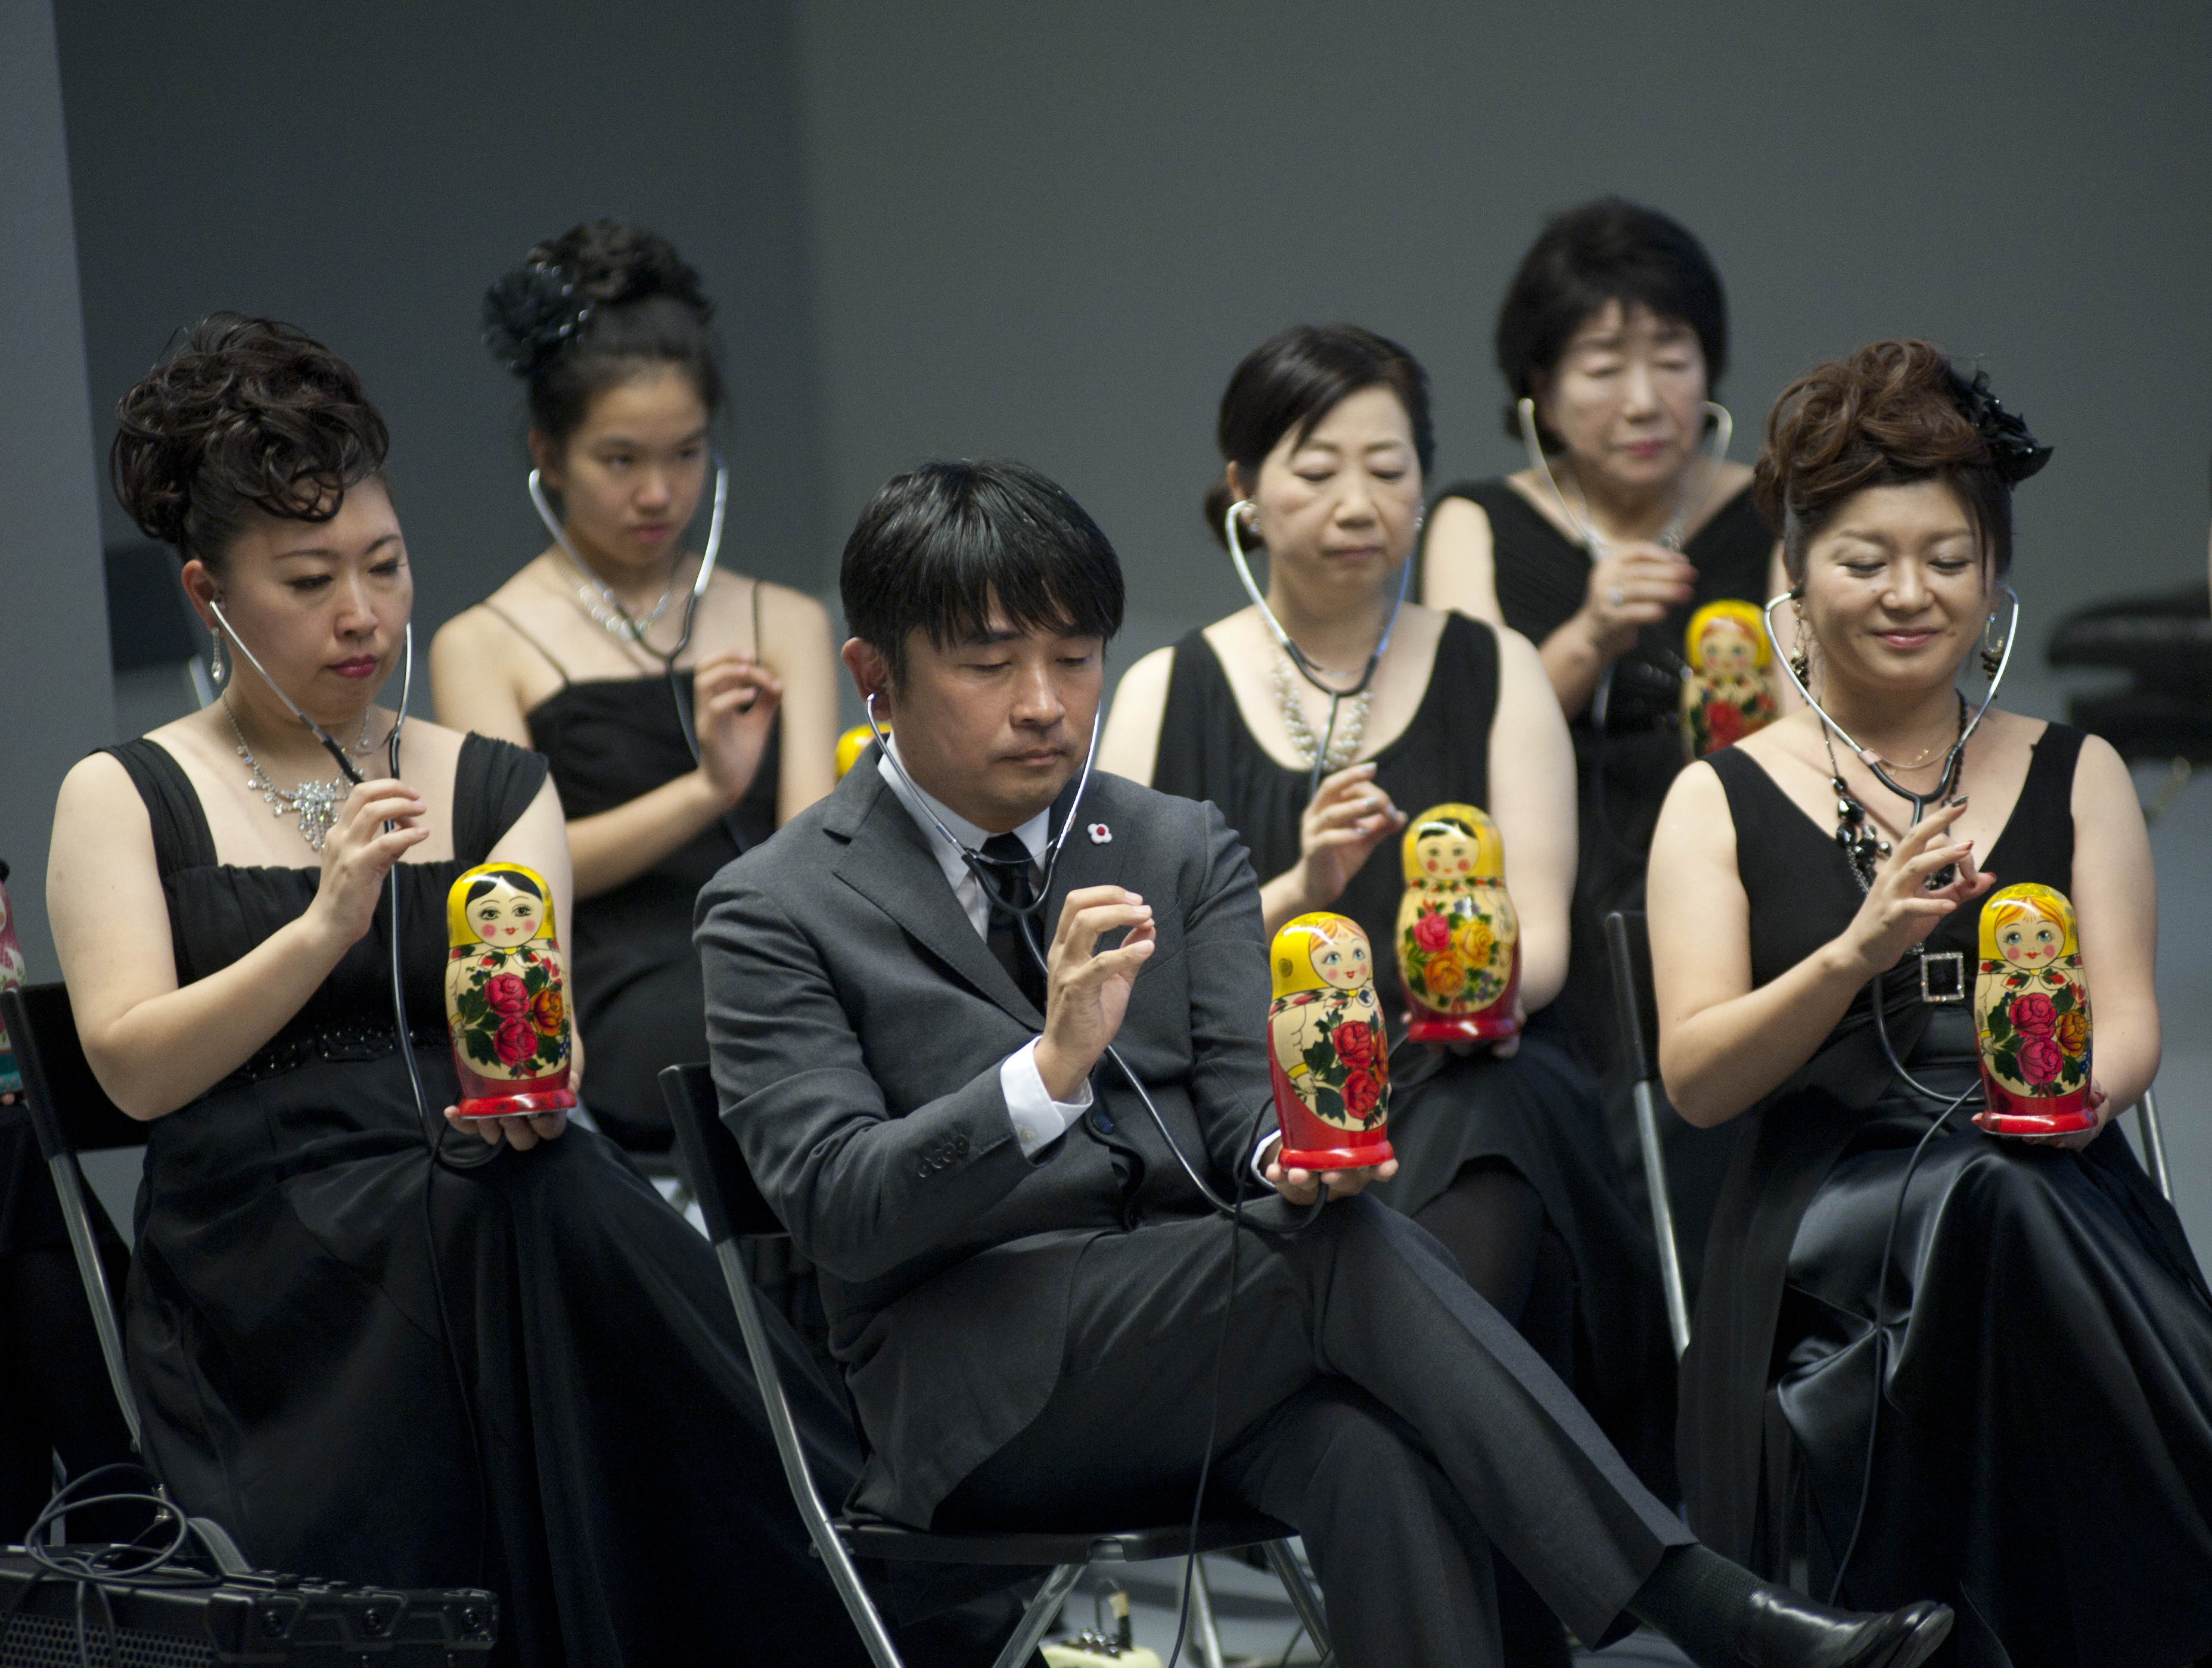 A Japanese orchestra under the direction of Masami Takeuchi (in the middle). Source: Press Photo